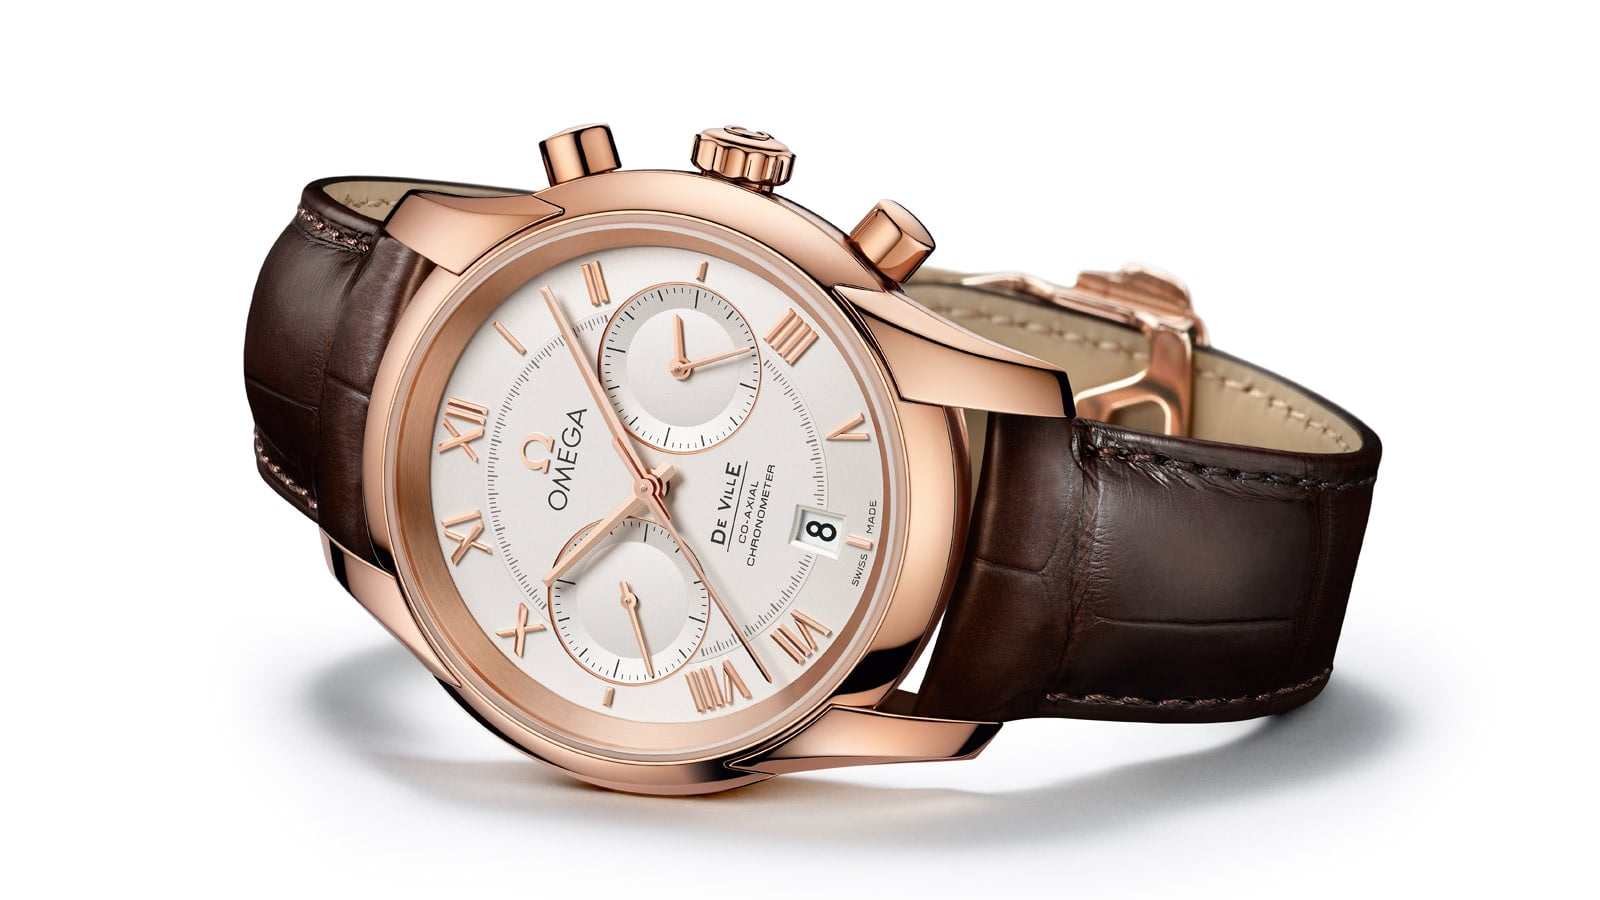 THE OMEGA DE VILLE CO-AXIAL GENTS' COLLECTION